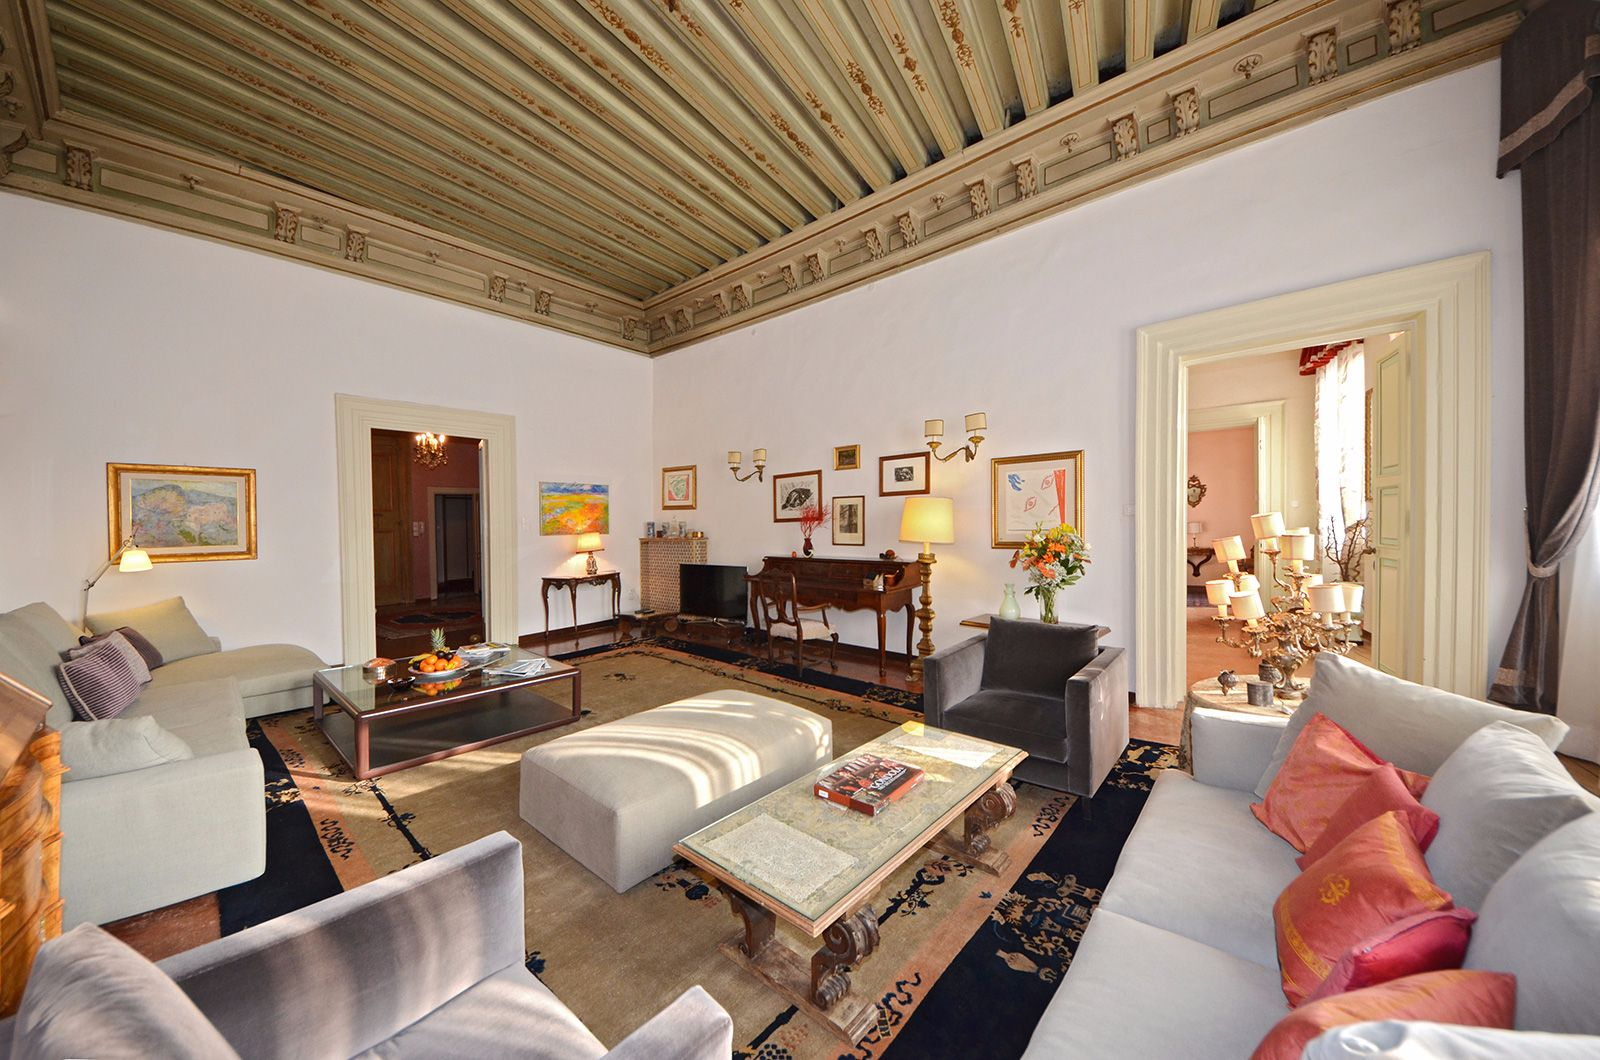 in the living room there are plenty of comfortable seats and antique furniture